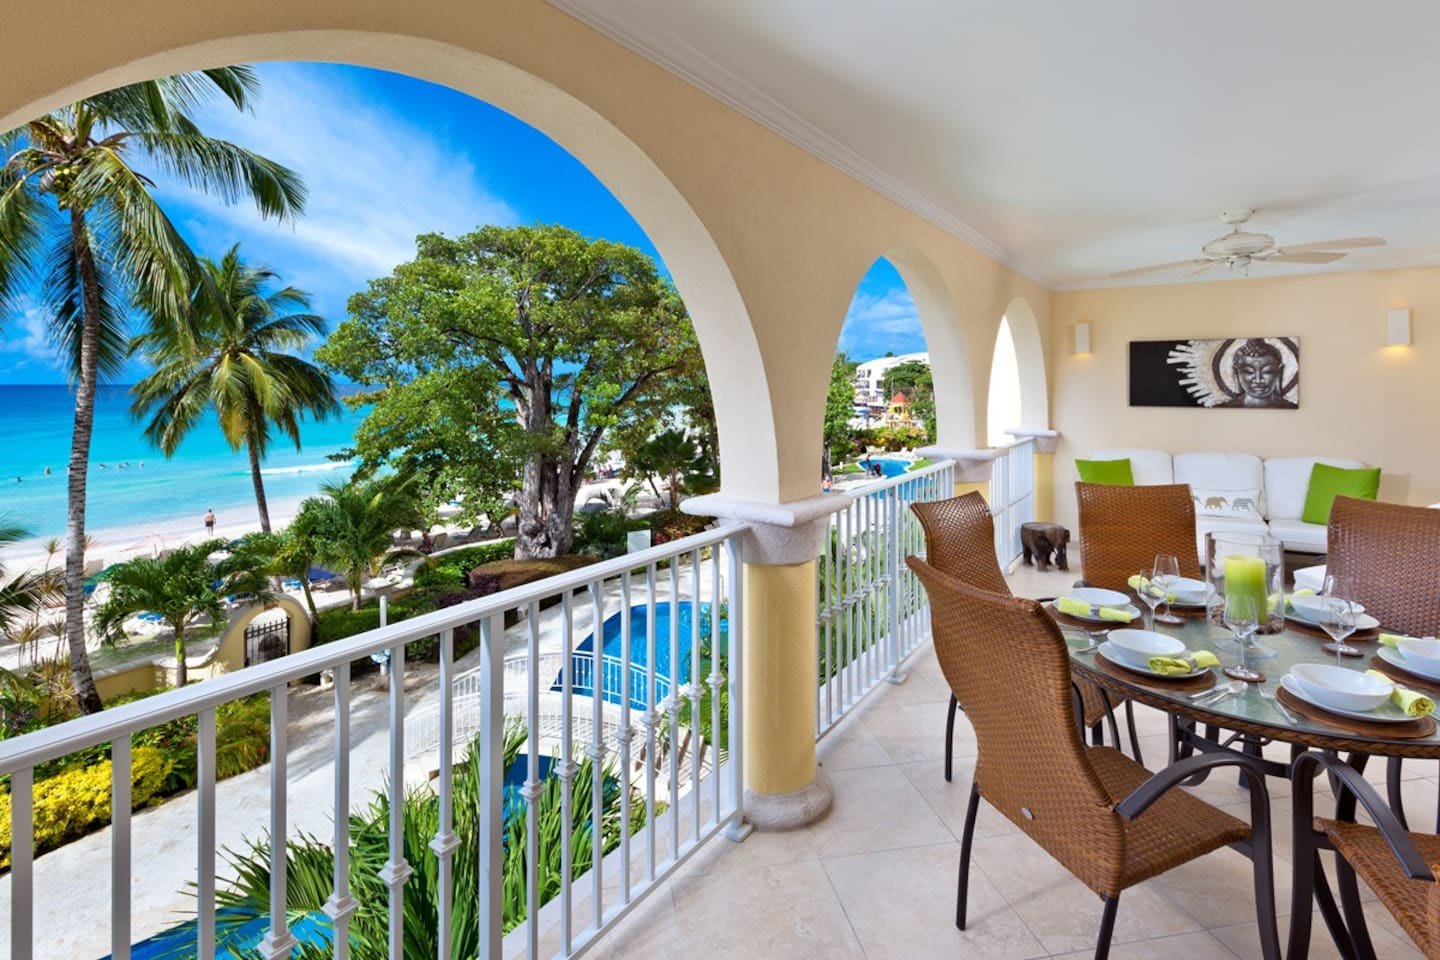 Take full advantage of this incredible view from your private terrace with lounge and dining space